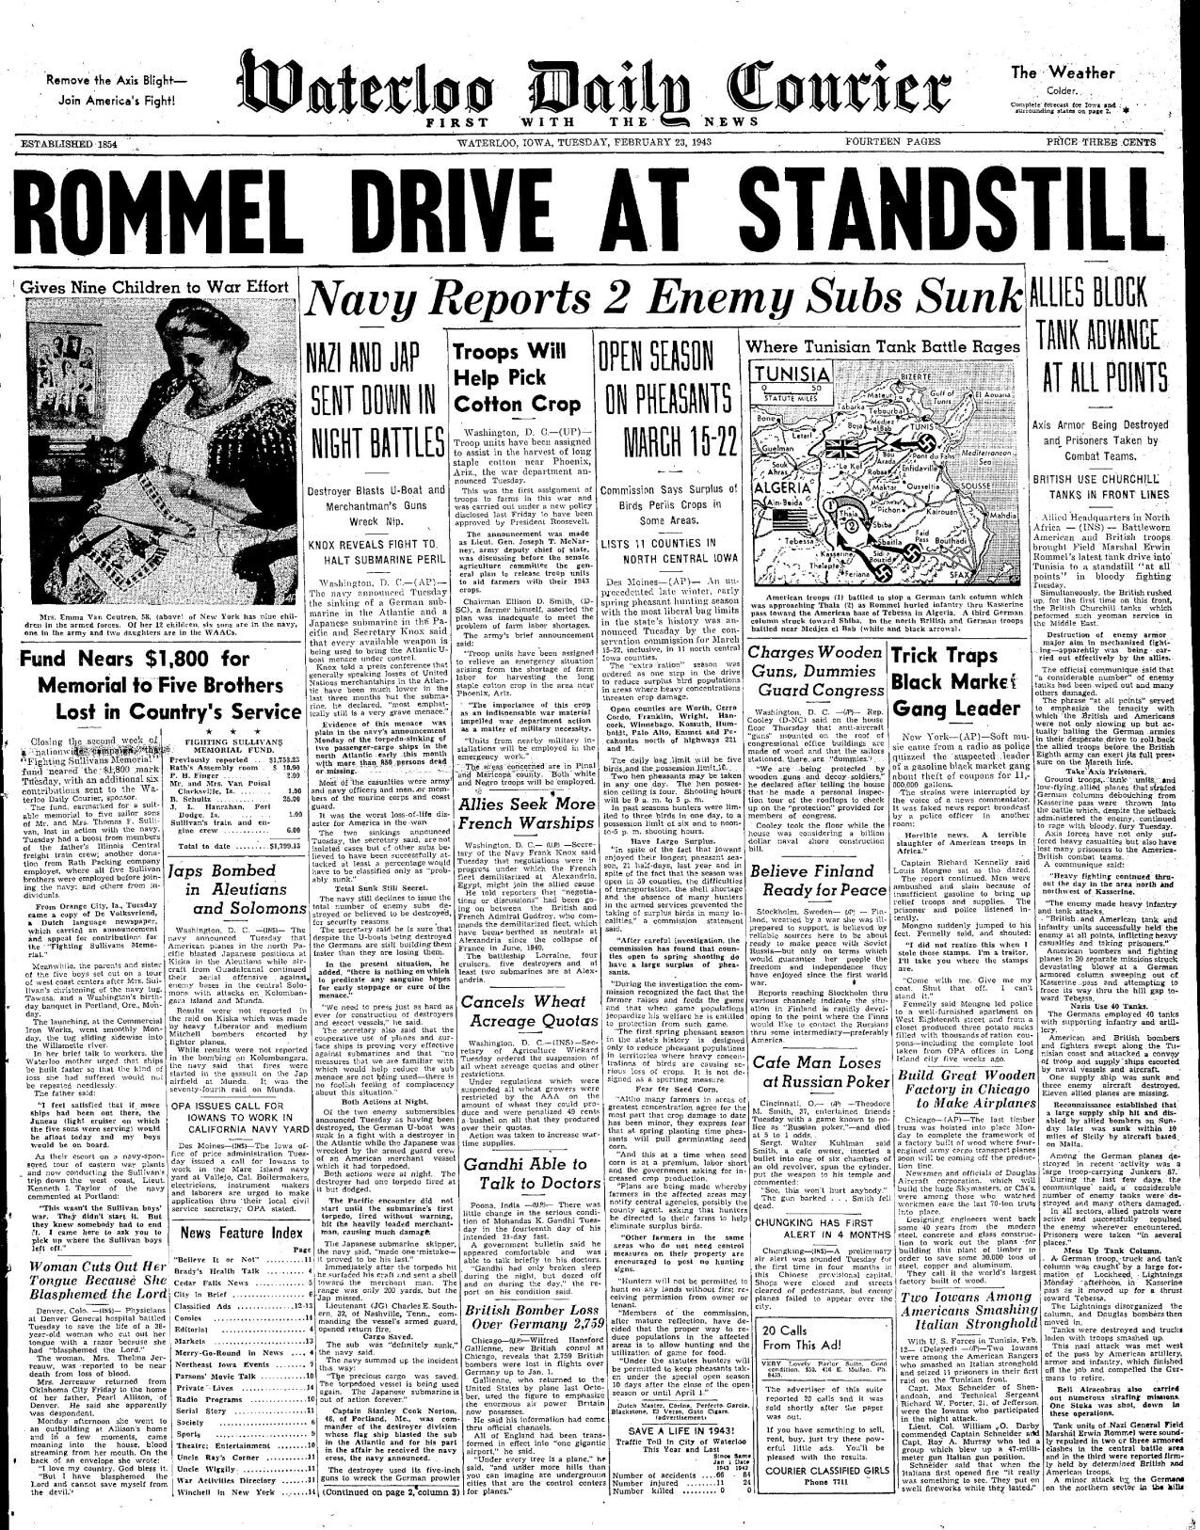 Courier Feb. 23, 1943